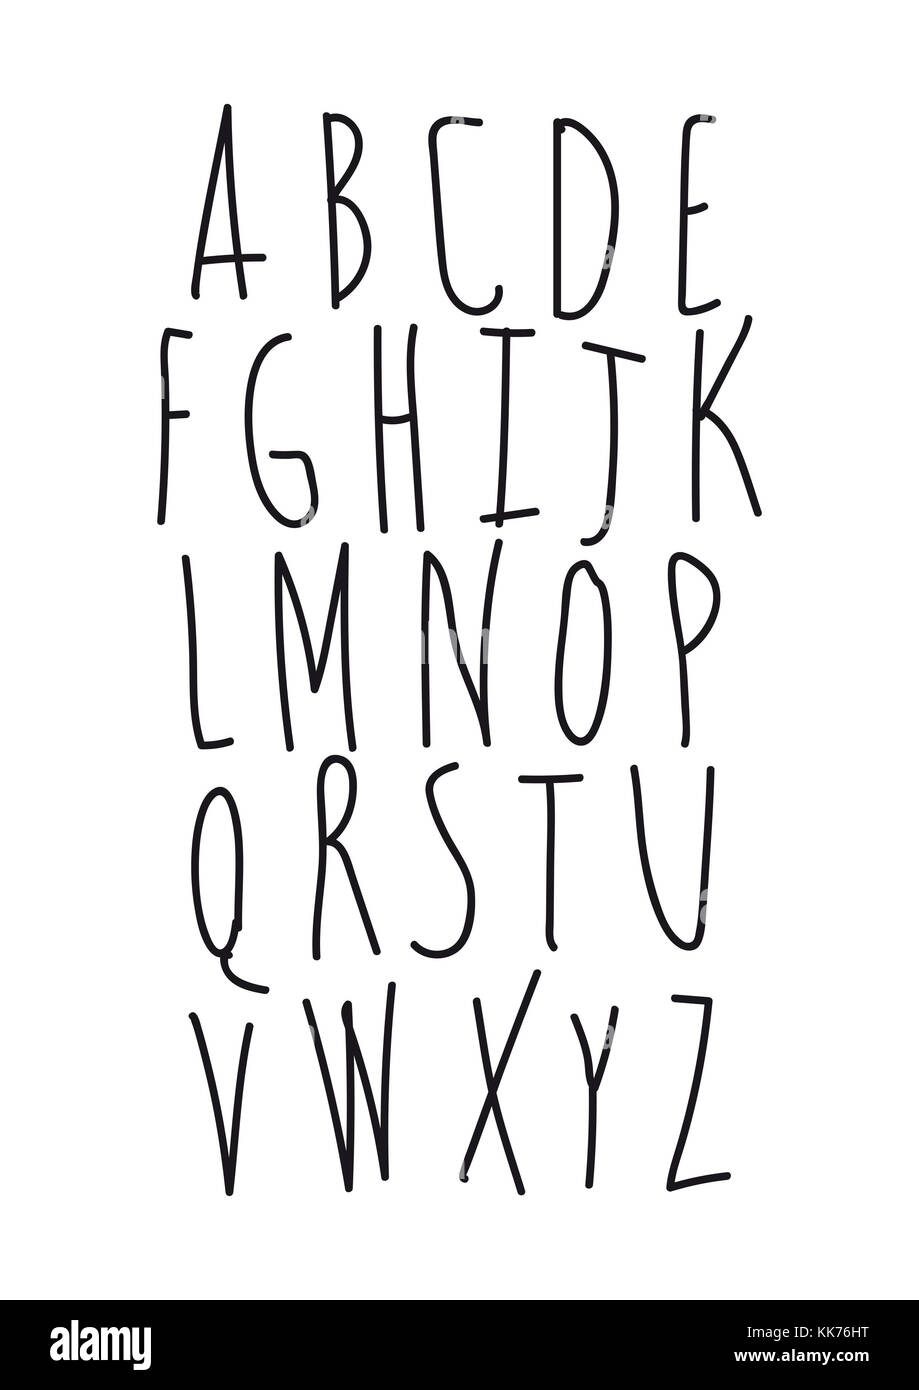 black infantile letters, text on white background - Stock Image